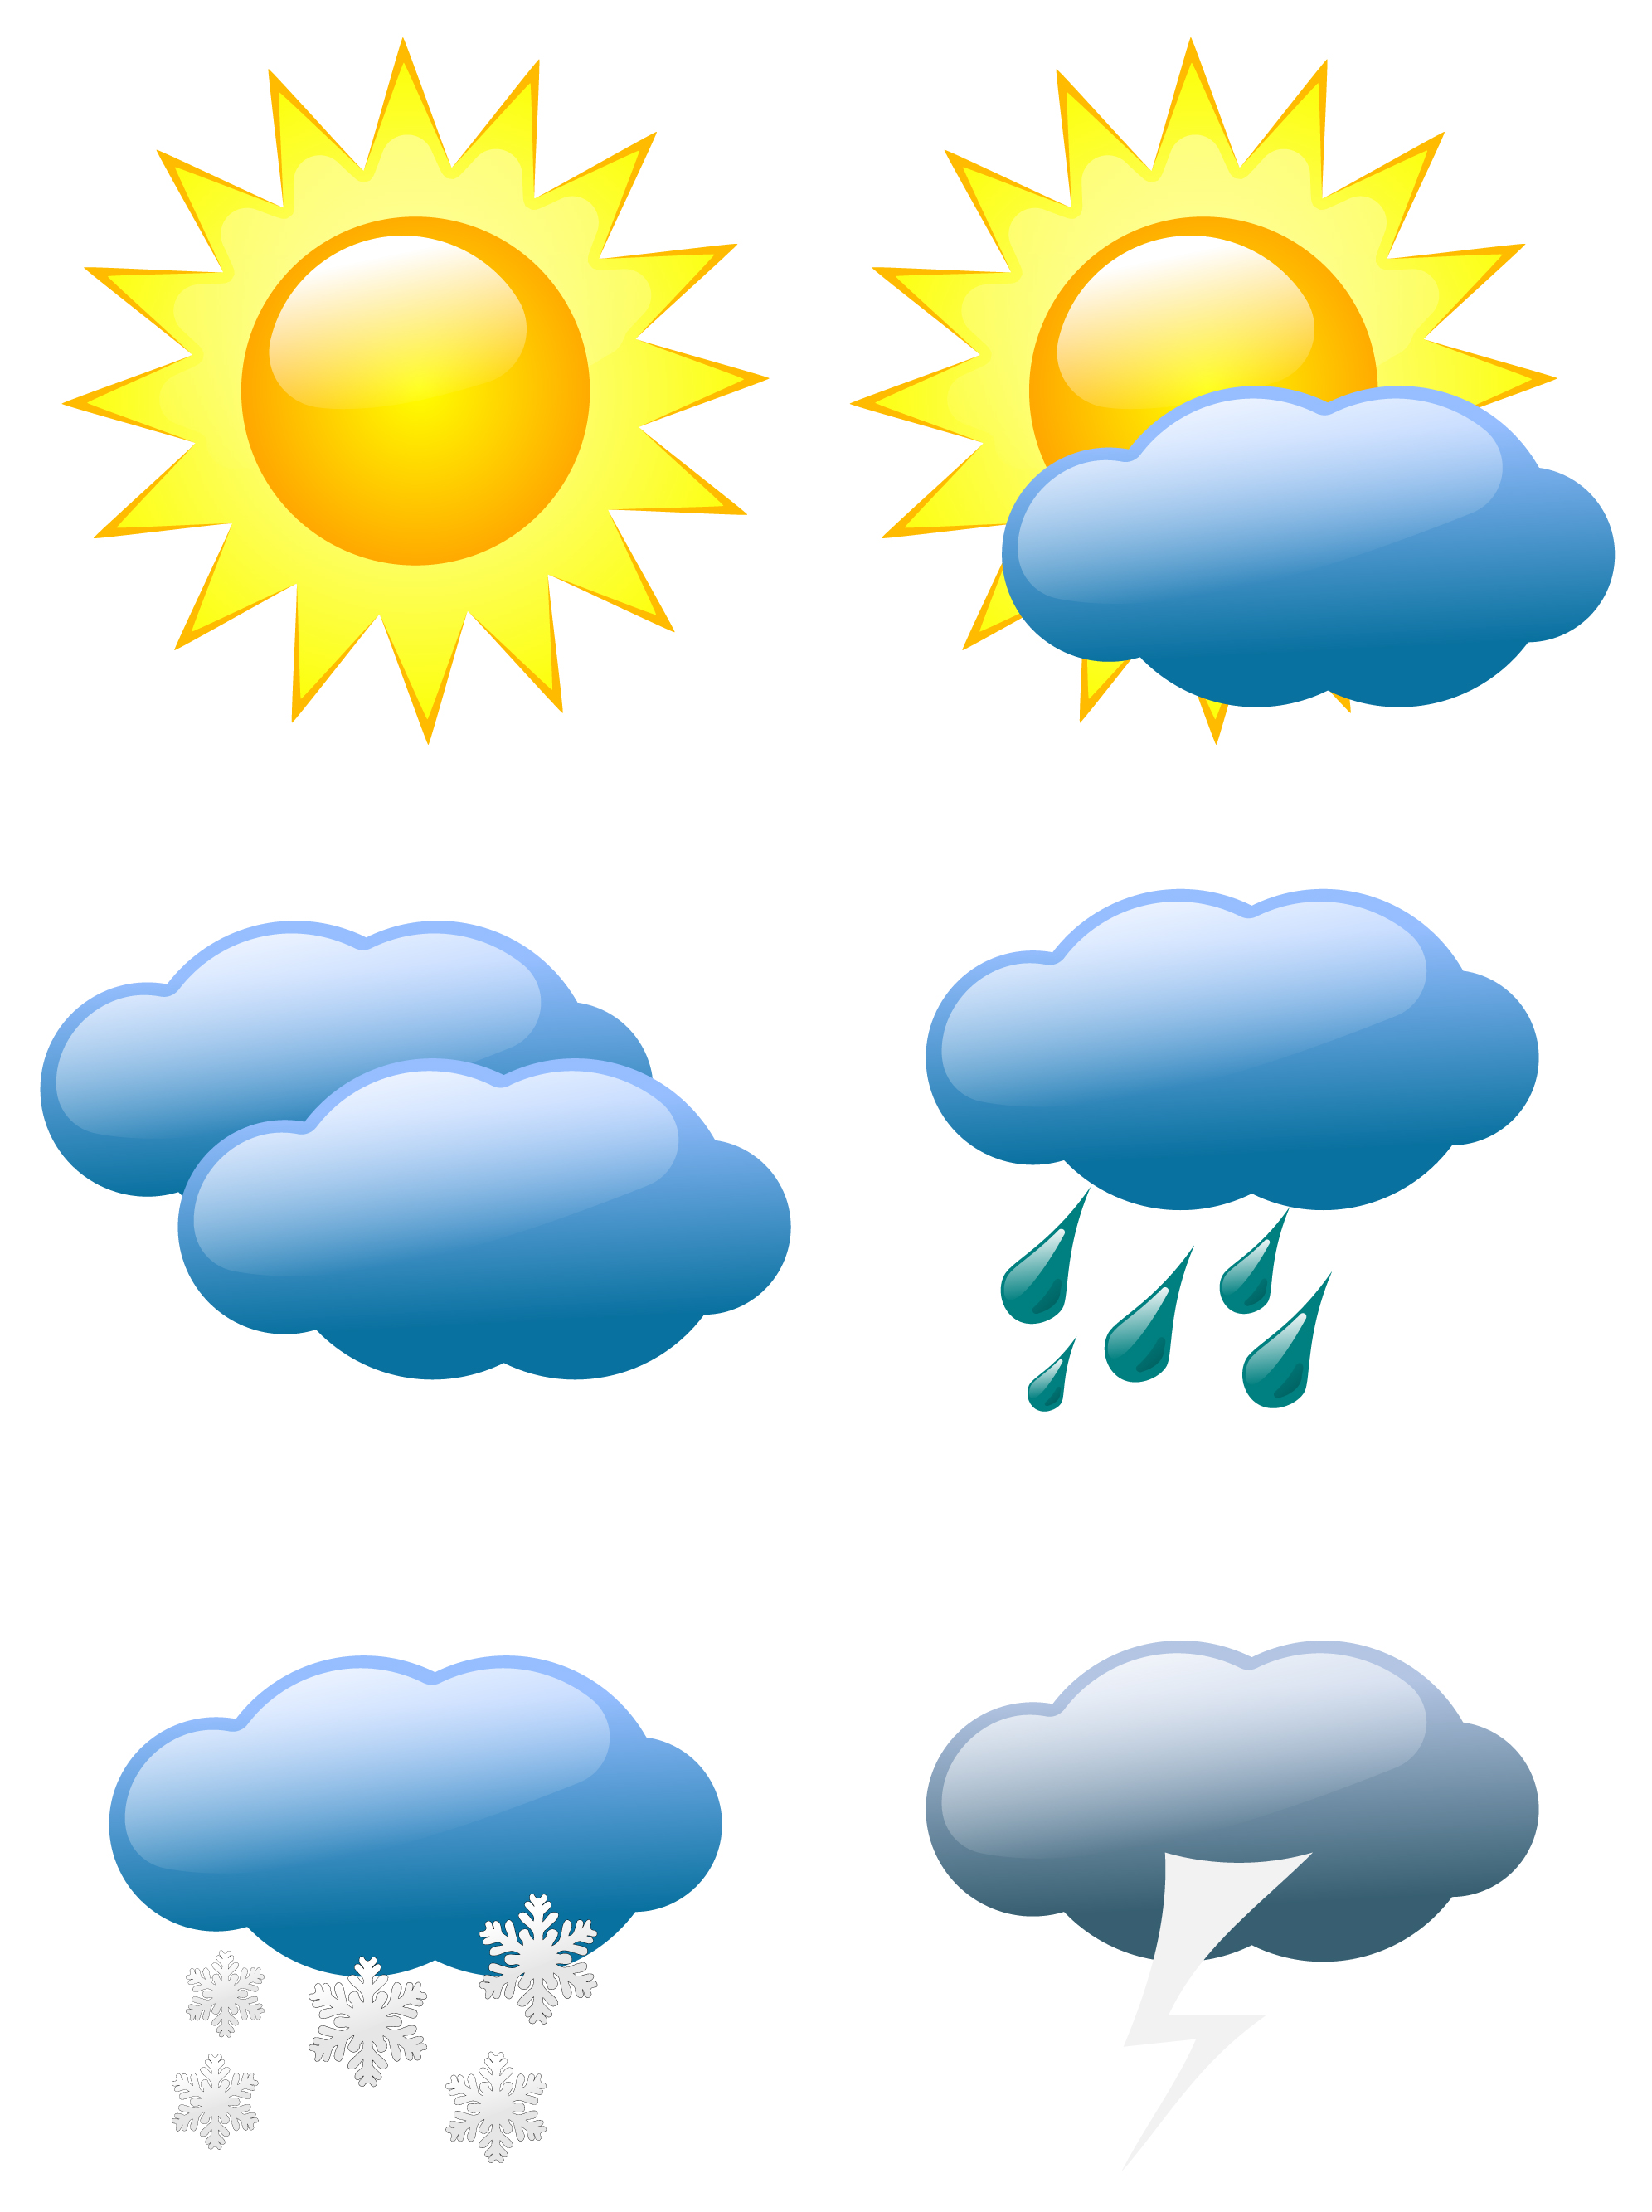 Free weather icons clipart jpg royalty free stock Free Weather Symbols Images, Download Free Clip Art, Free Clip Art ... jpg royalty free stock